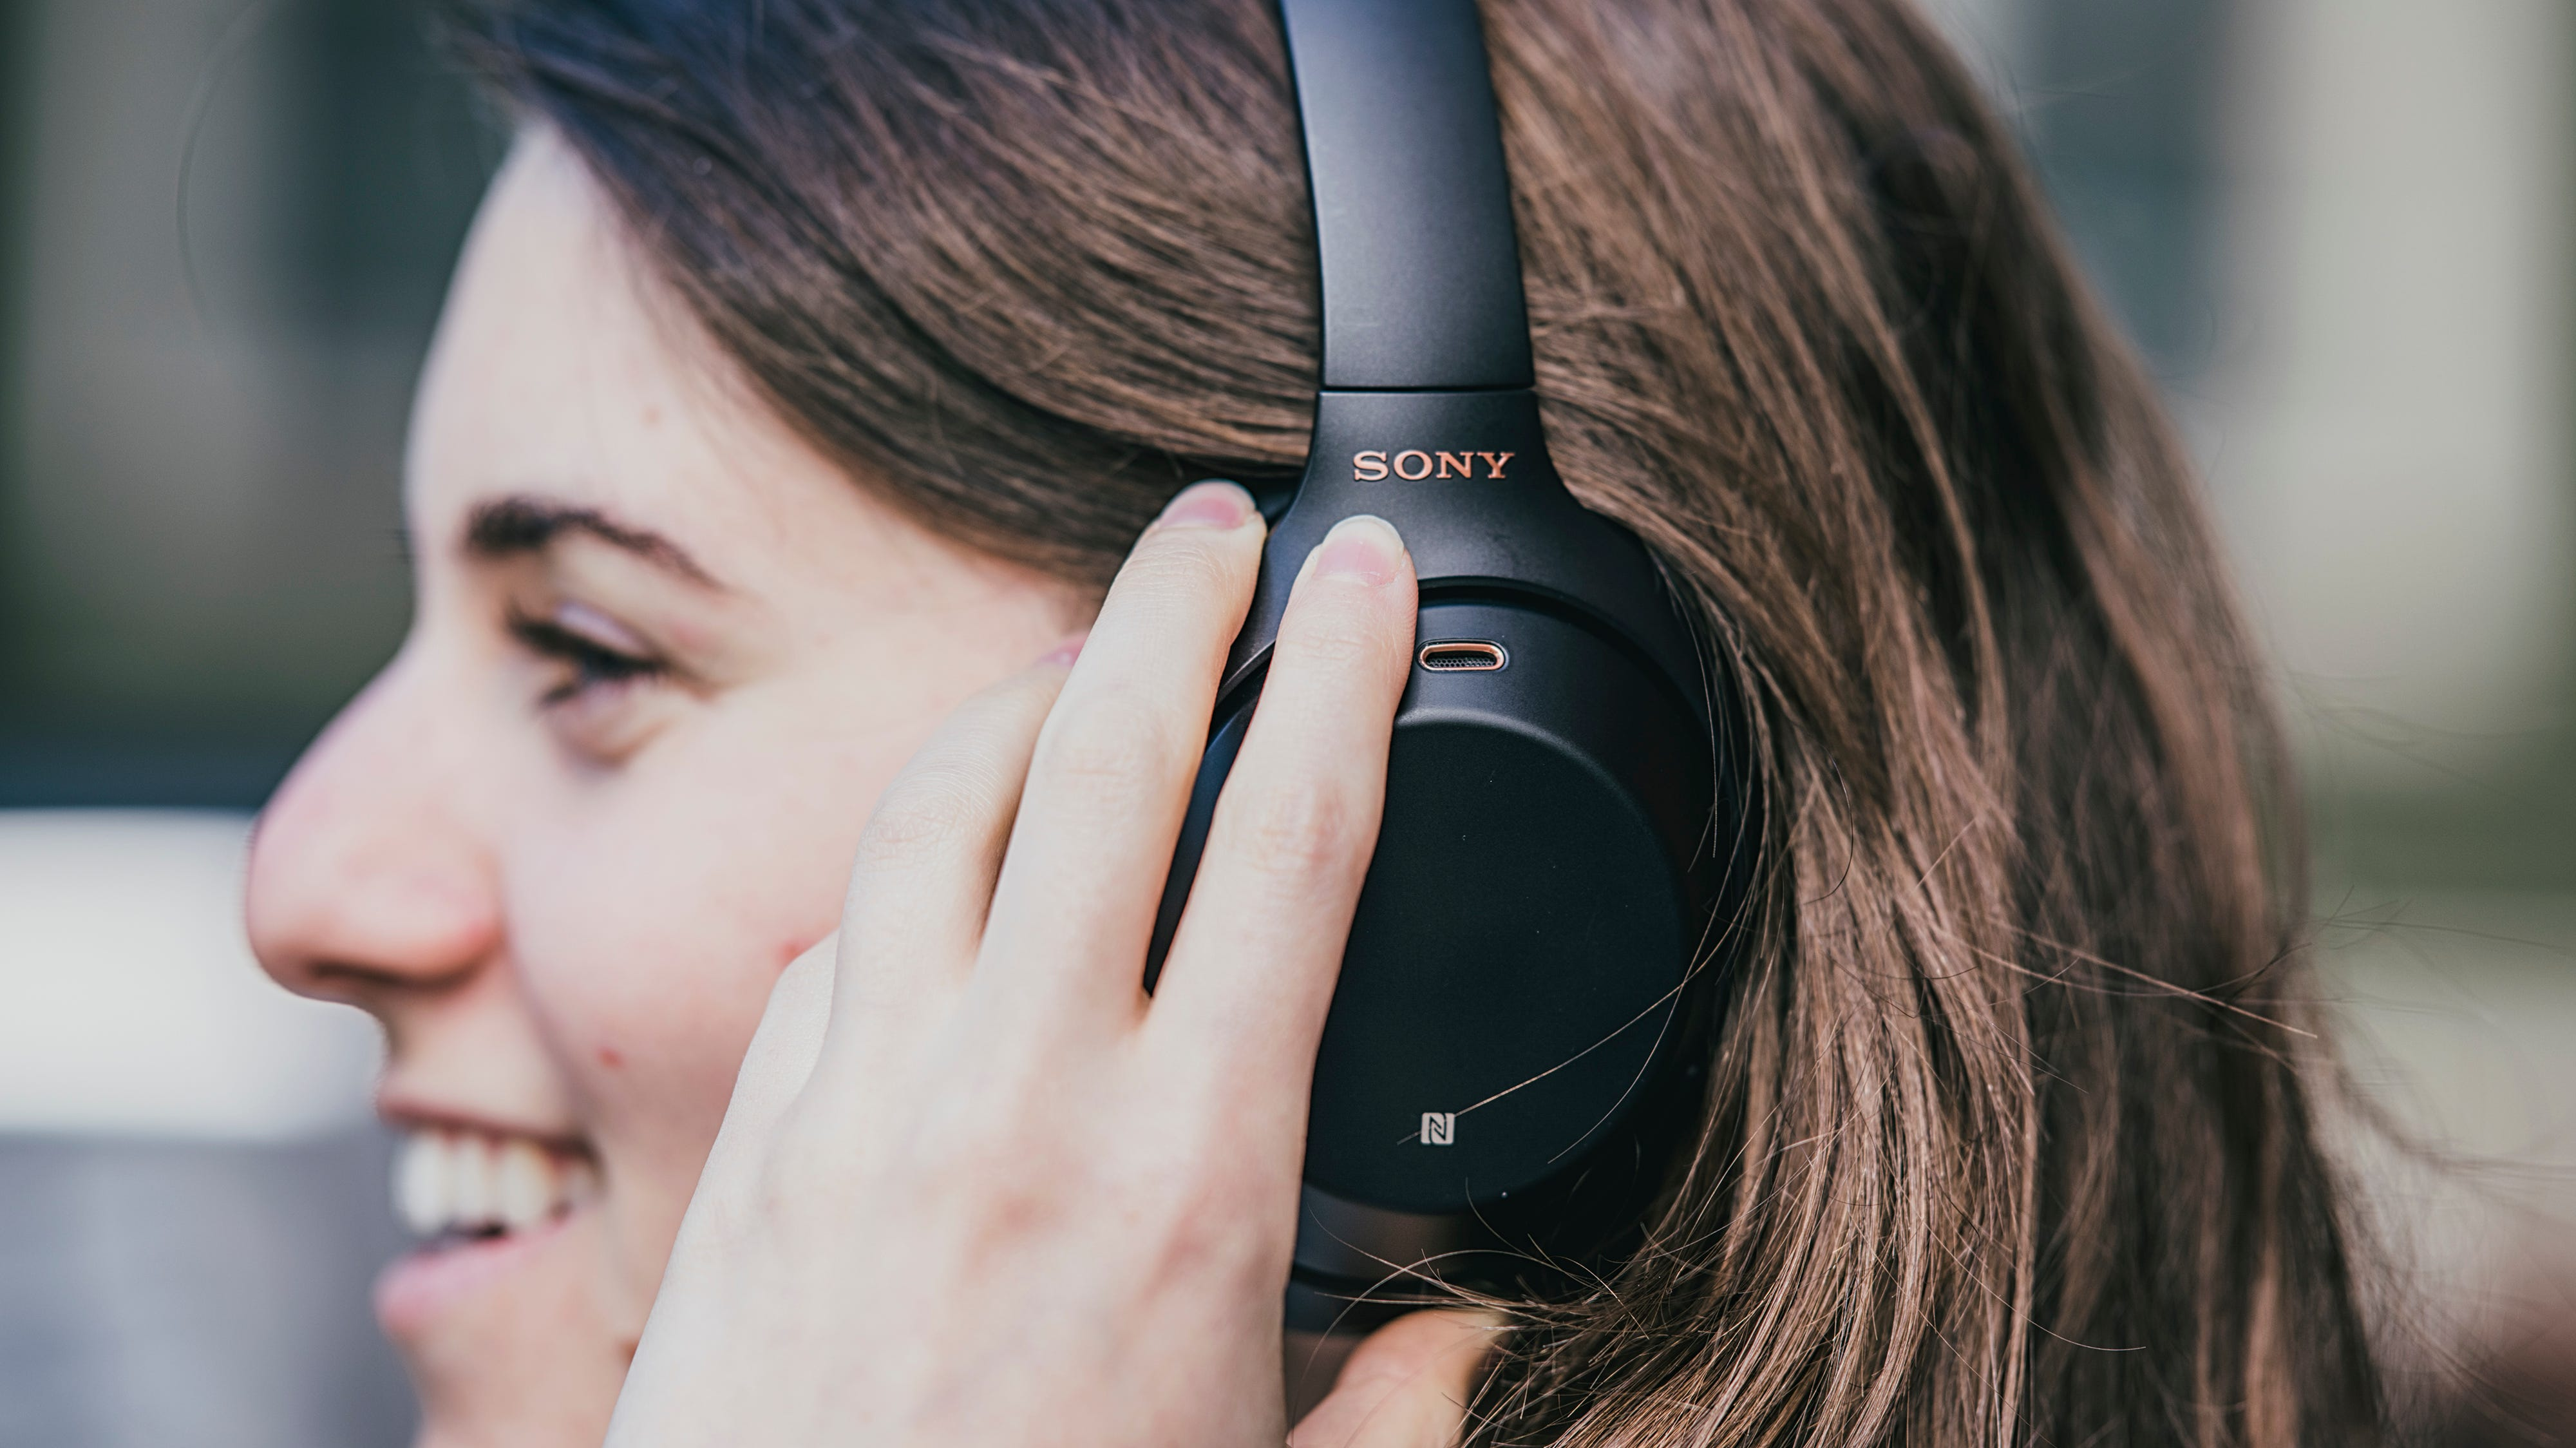 Black Friday 2020: The best Amazon deals on Sony, Kindle, Bose, and more